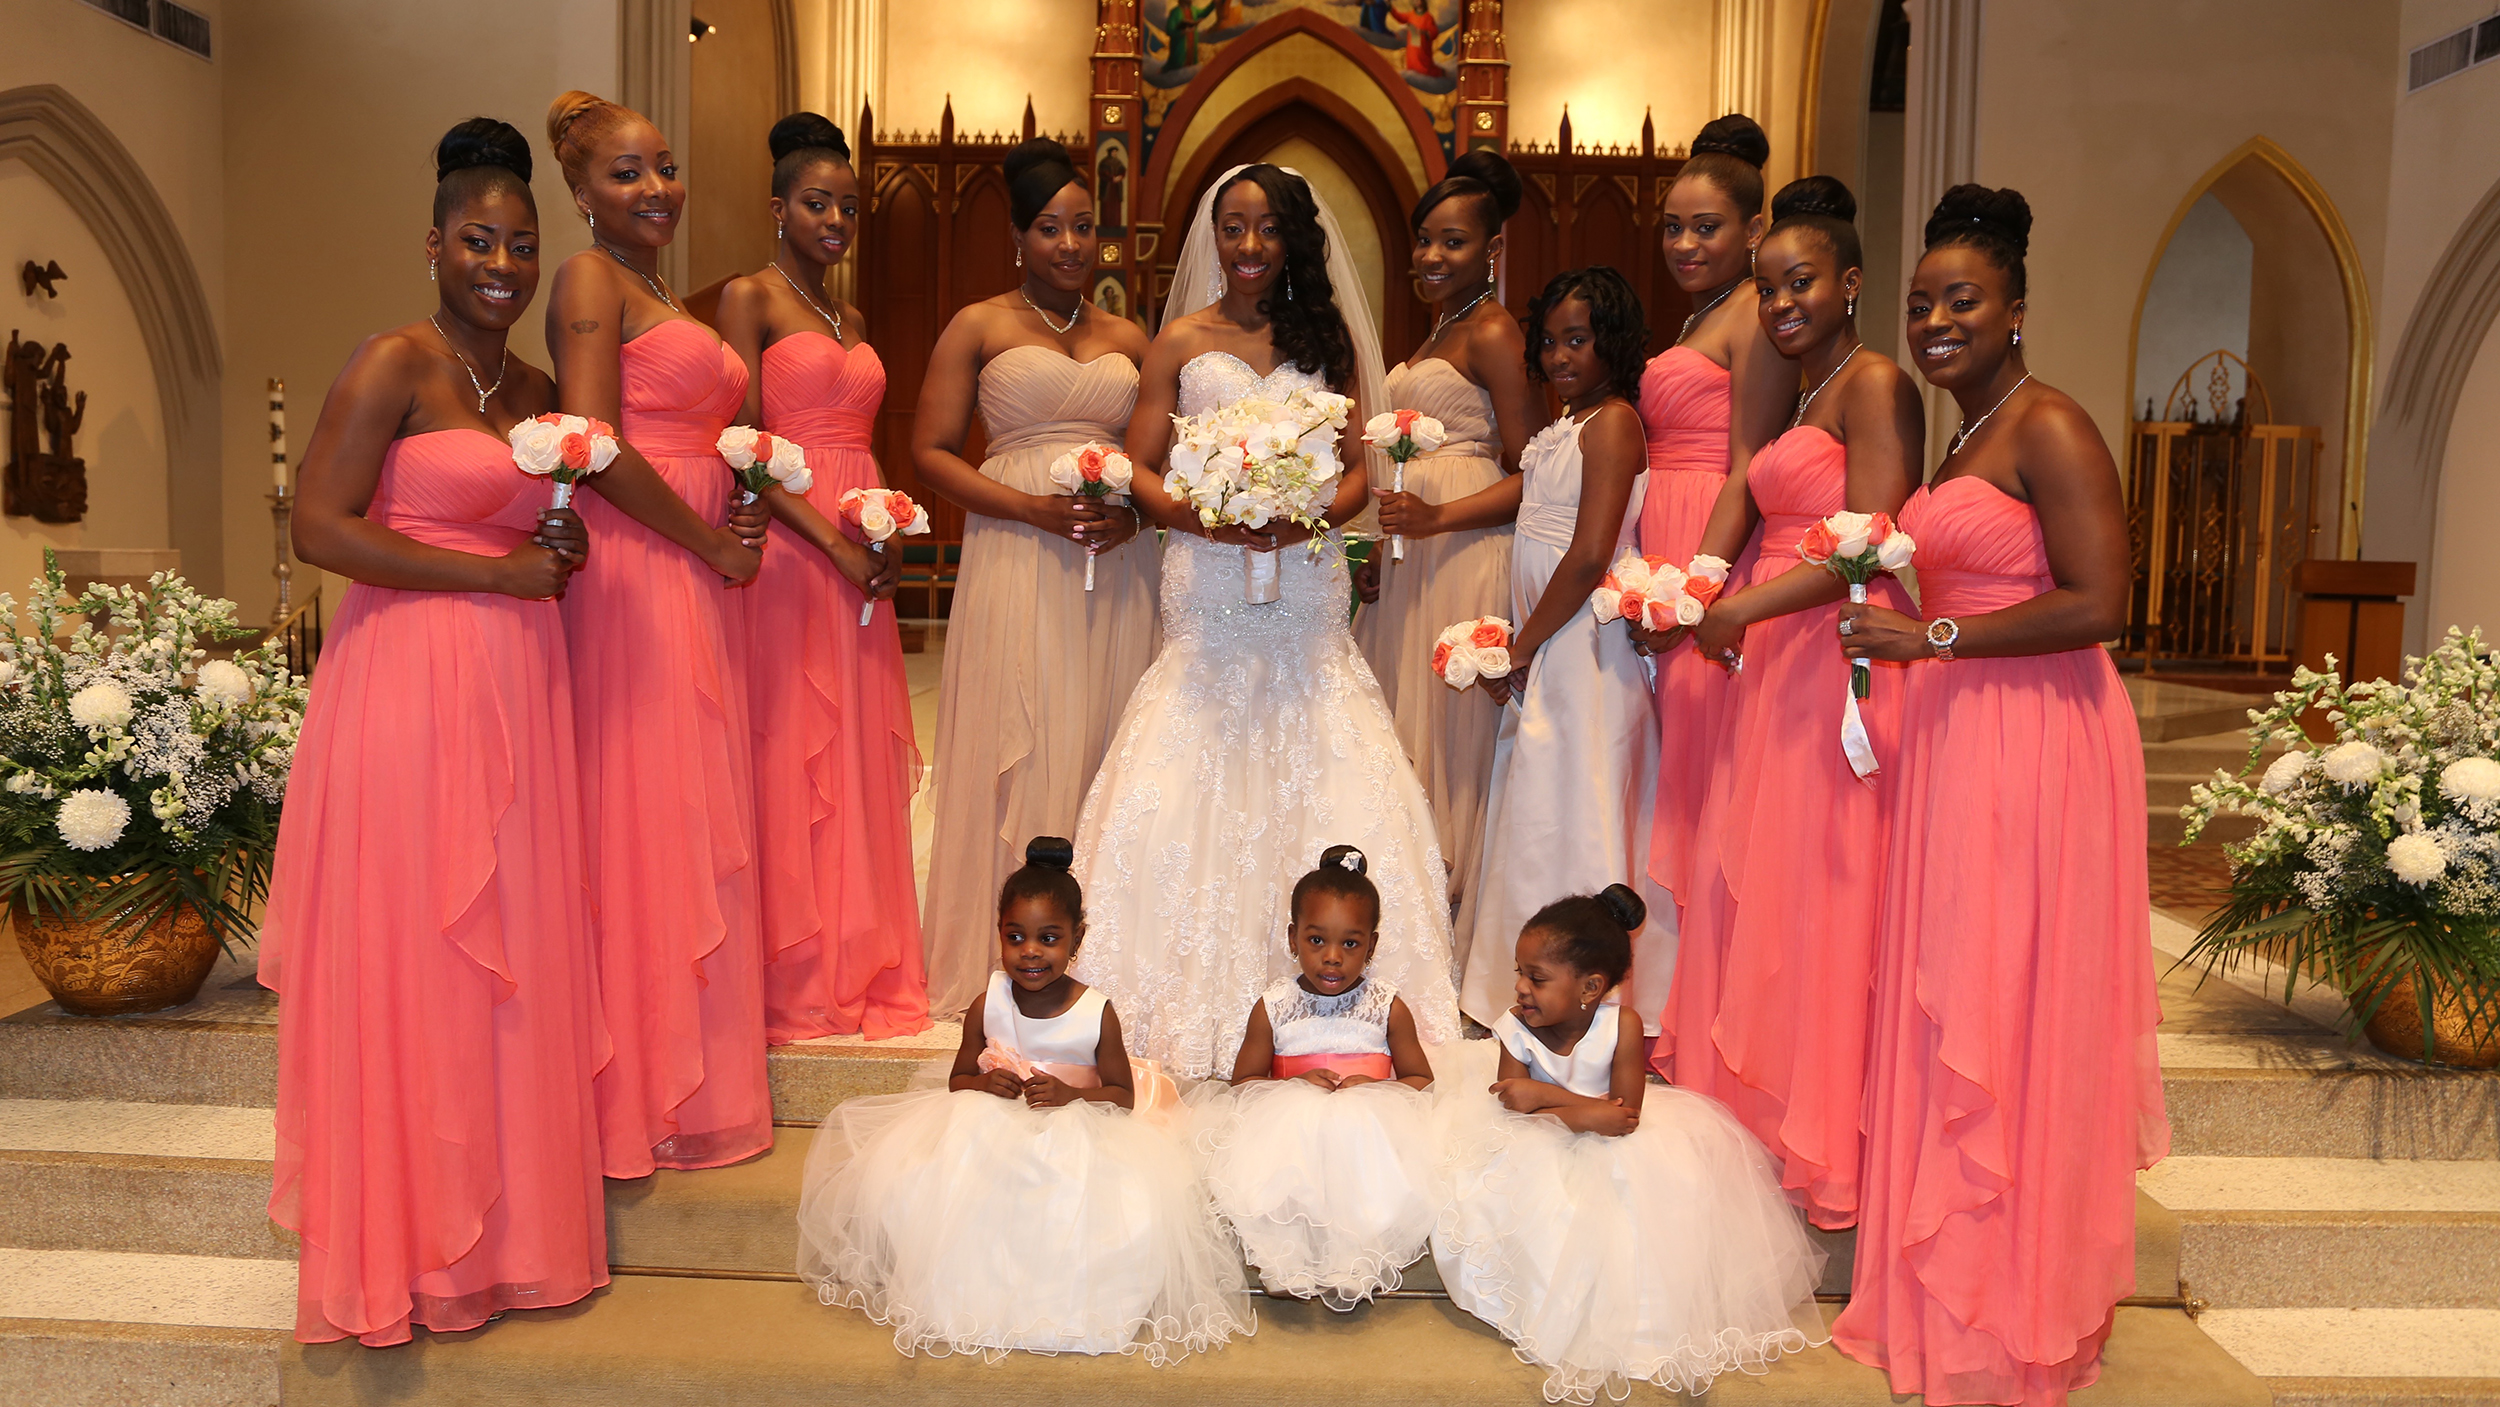 Bridesmaids and bridal party tips what i wish i knew for Wedding party decorations